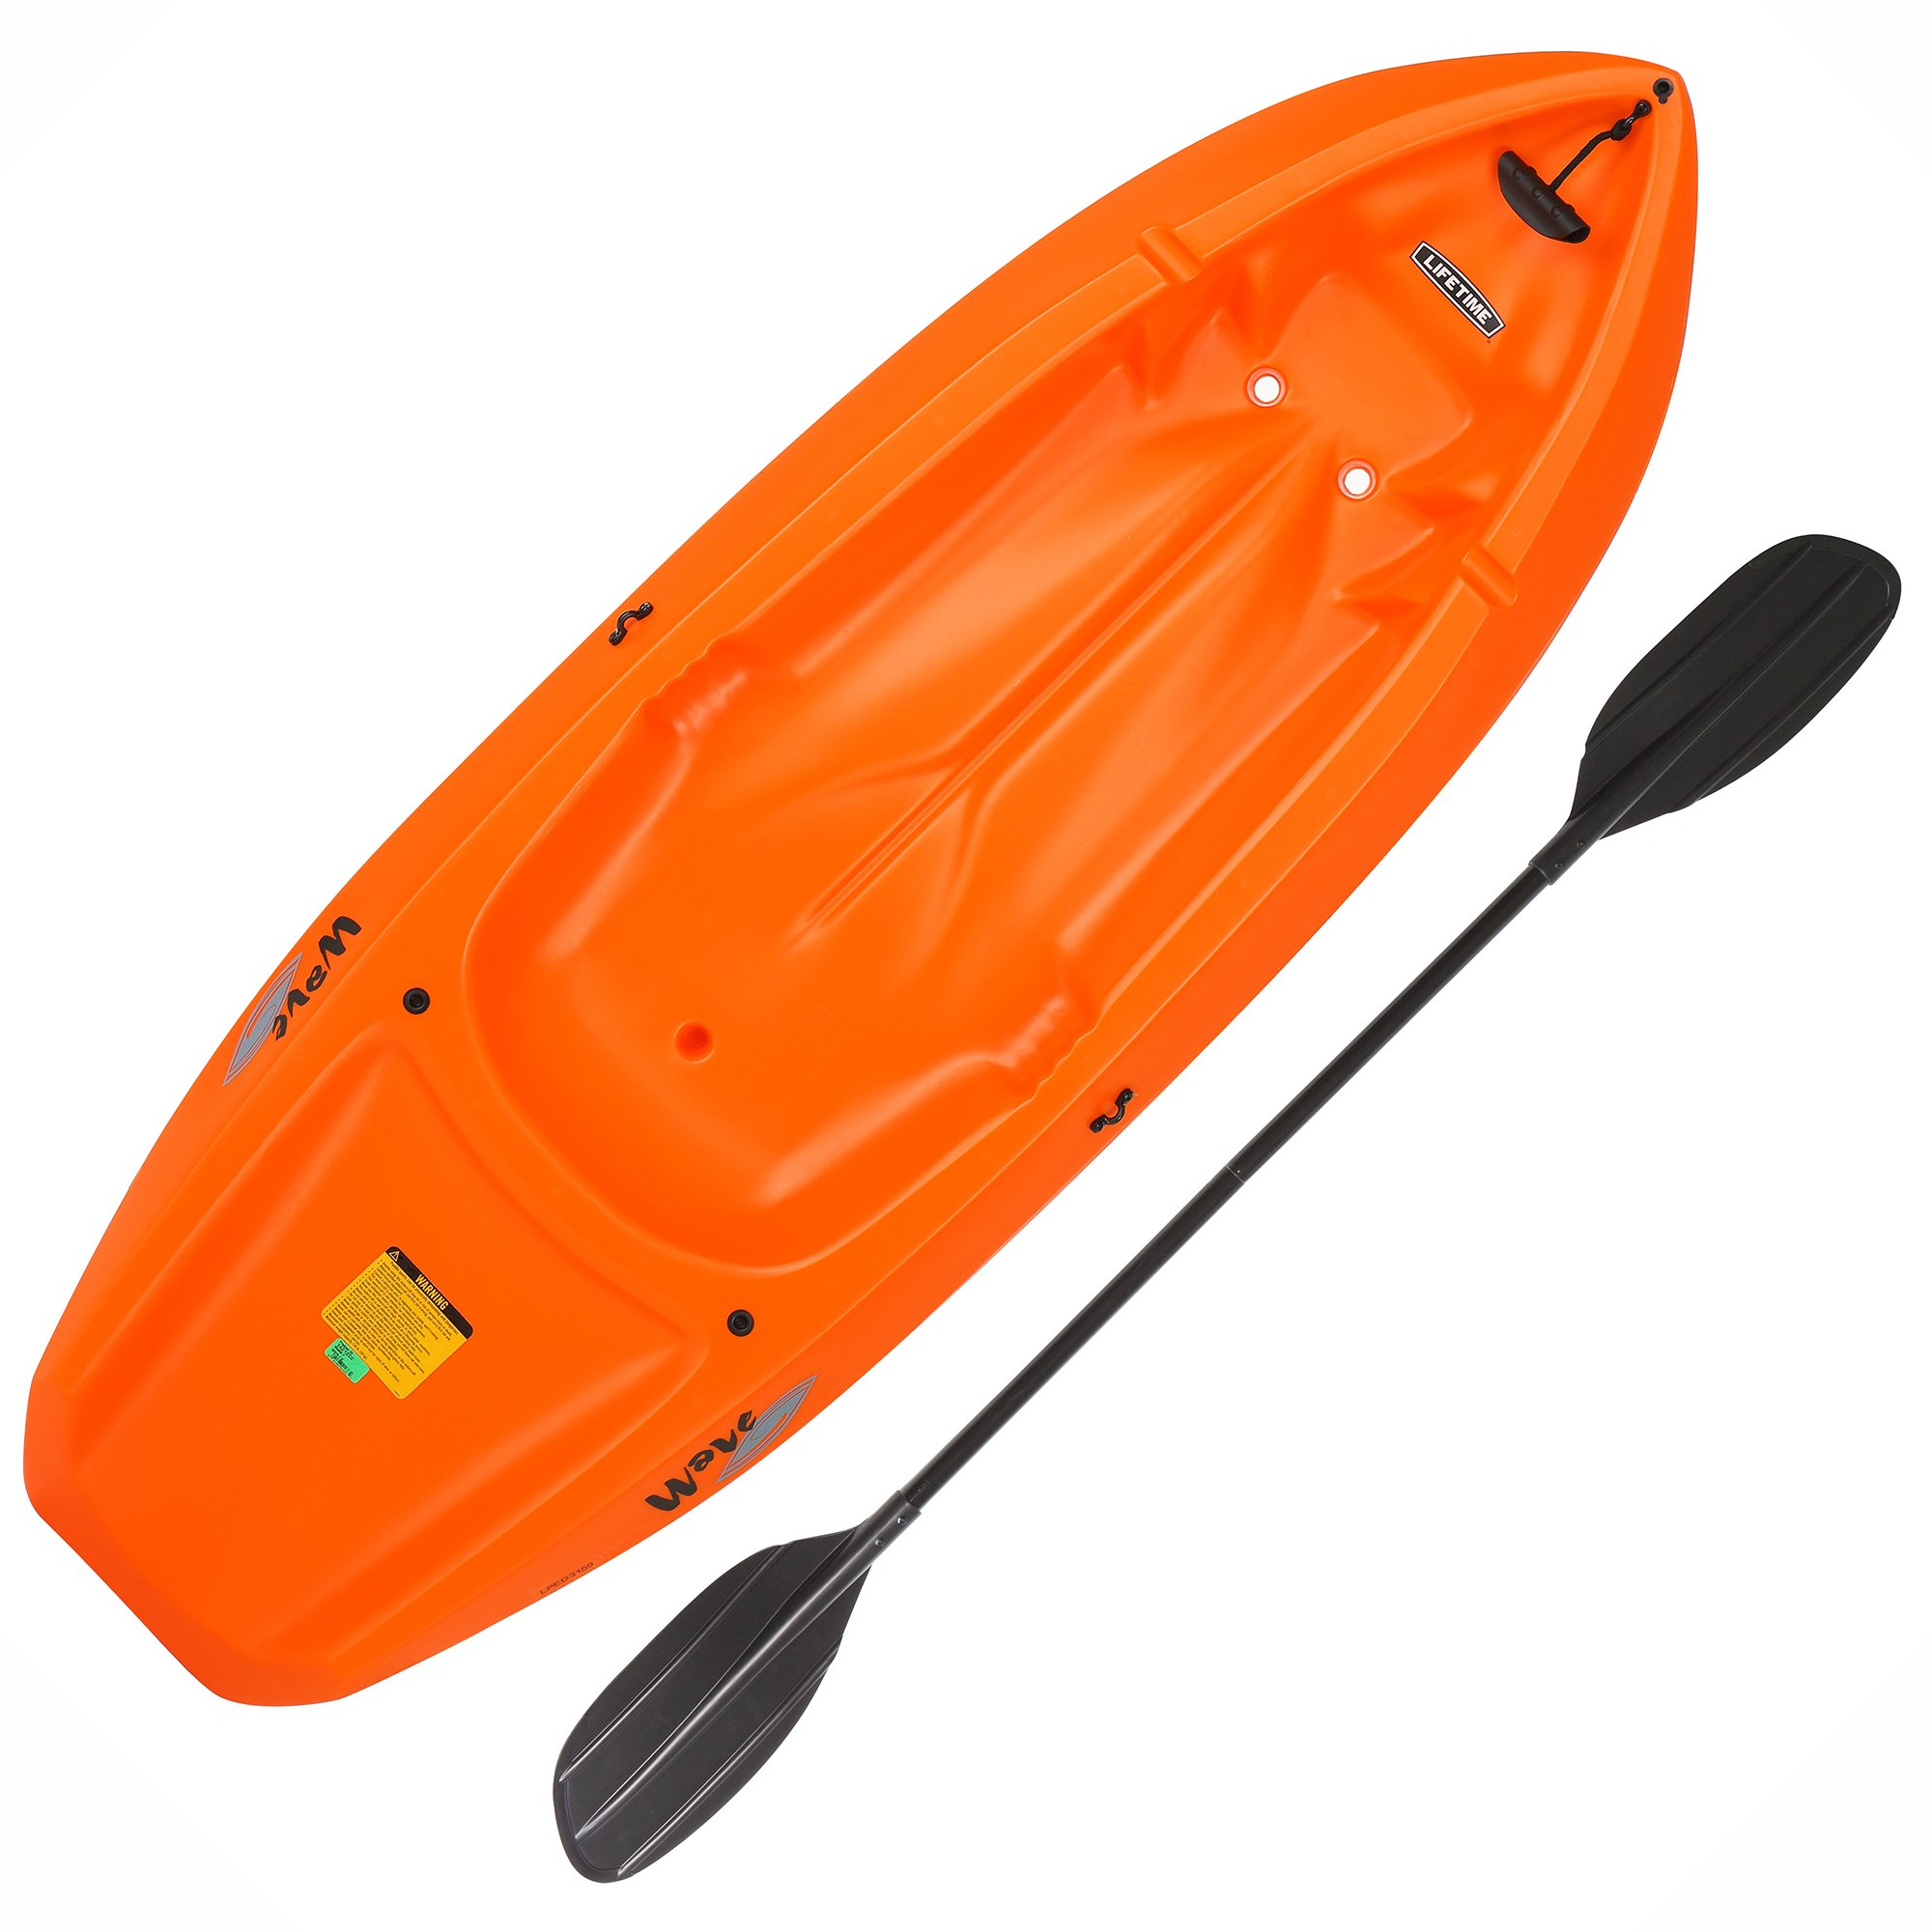 Lifetime 90479 Youth 6 Feet Wave Kayak with Paddle, Orange by Lifetime